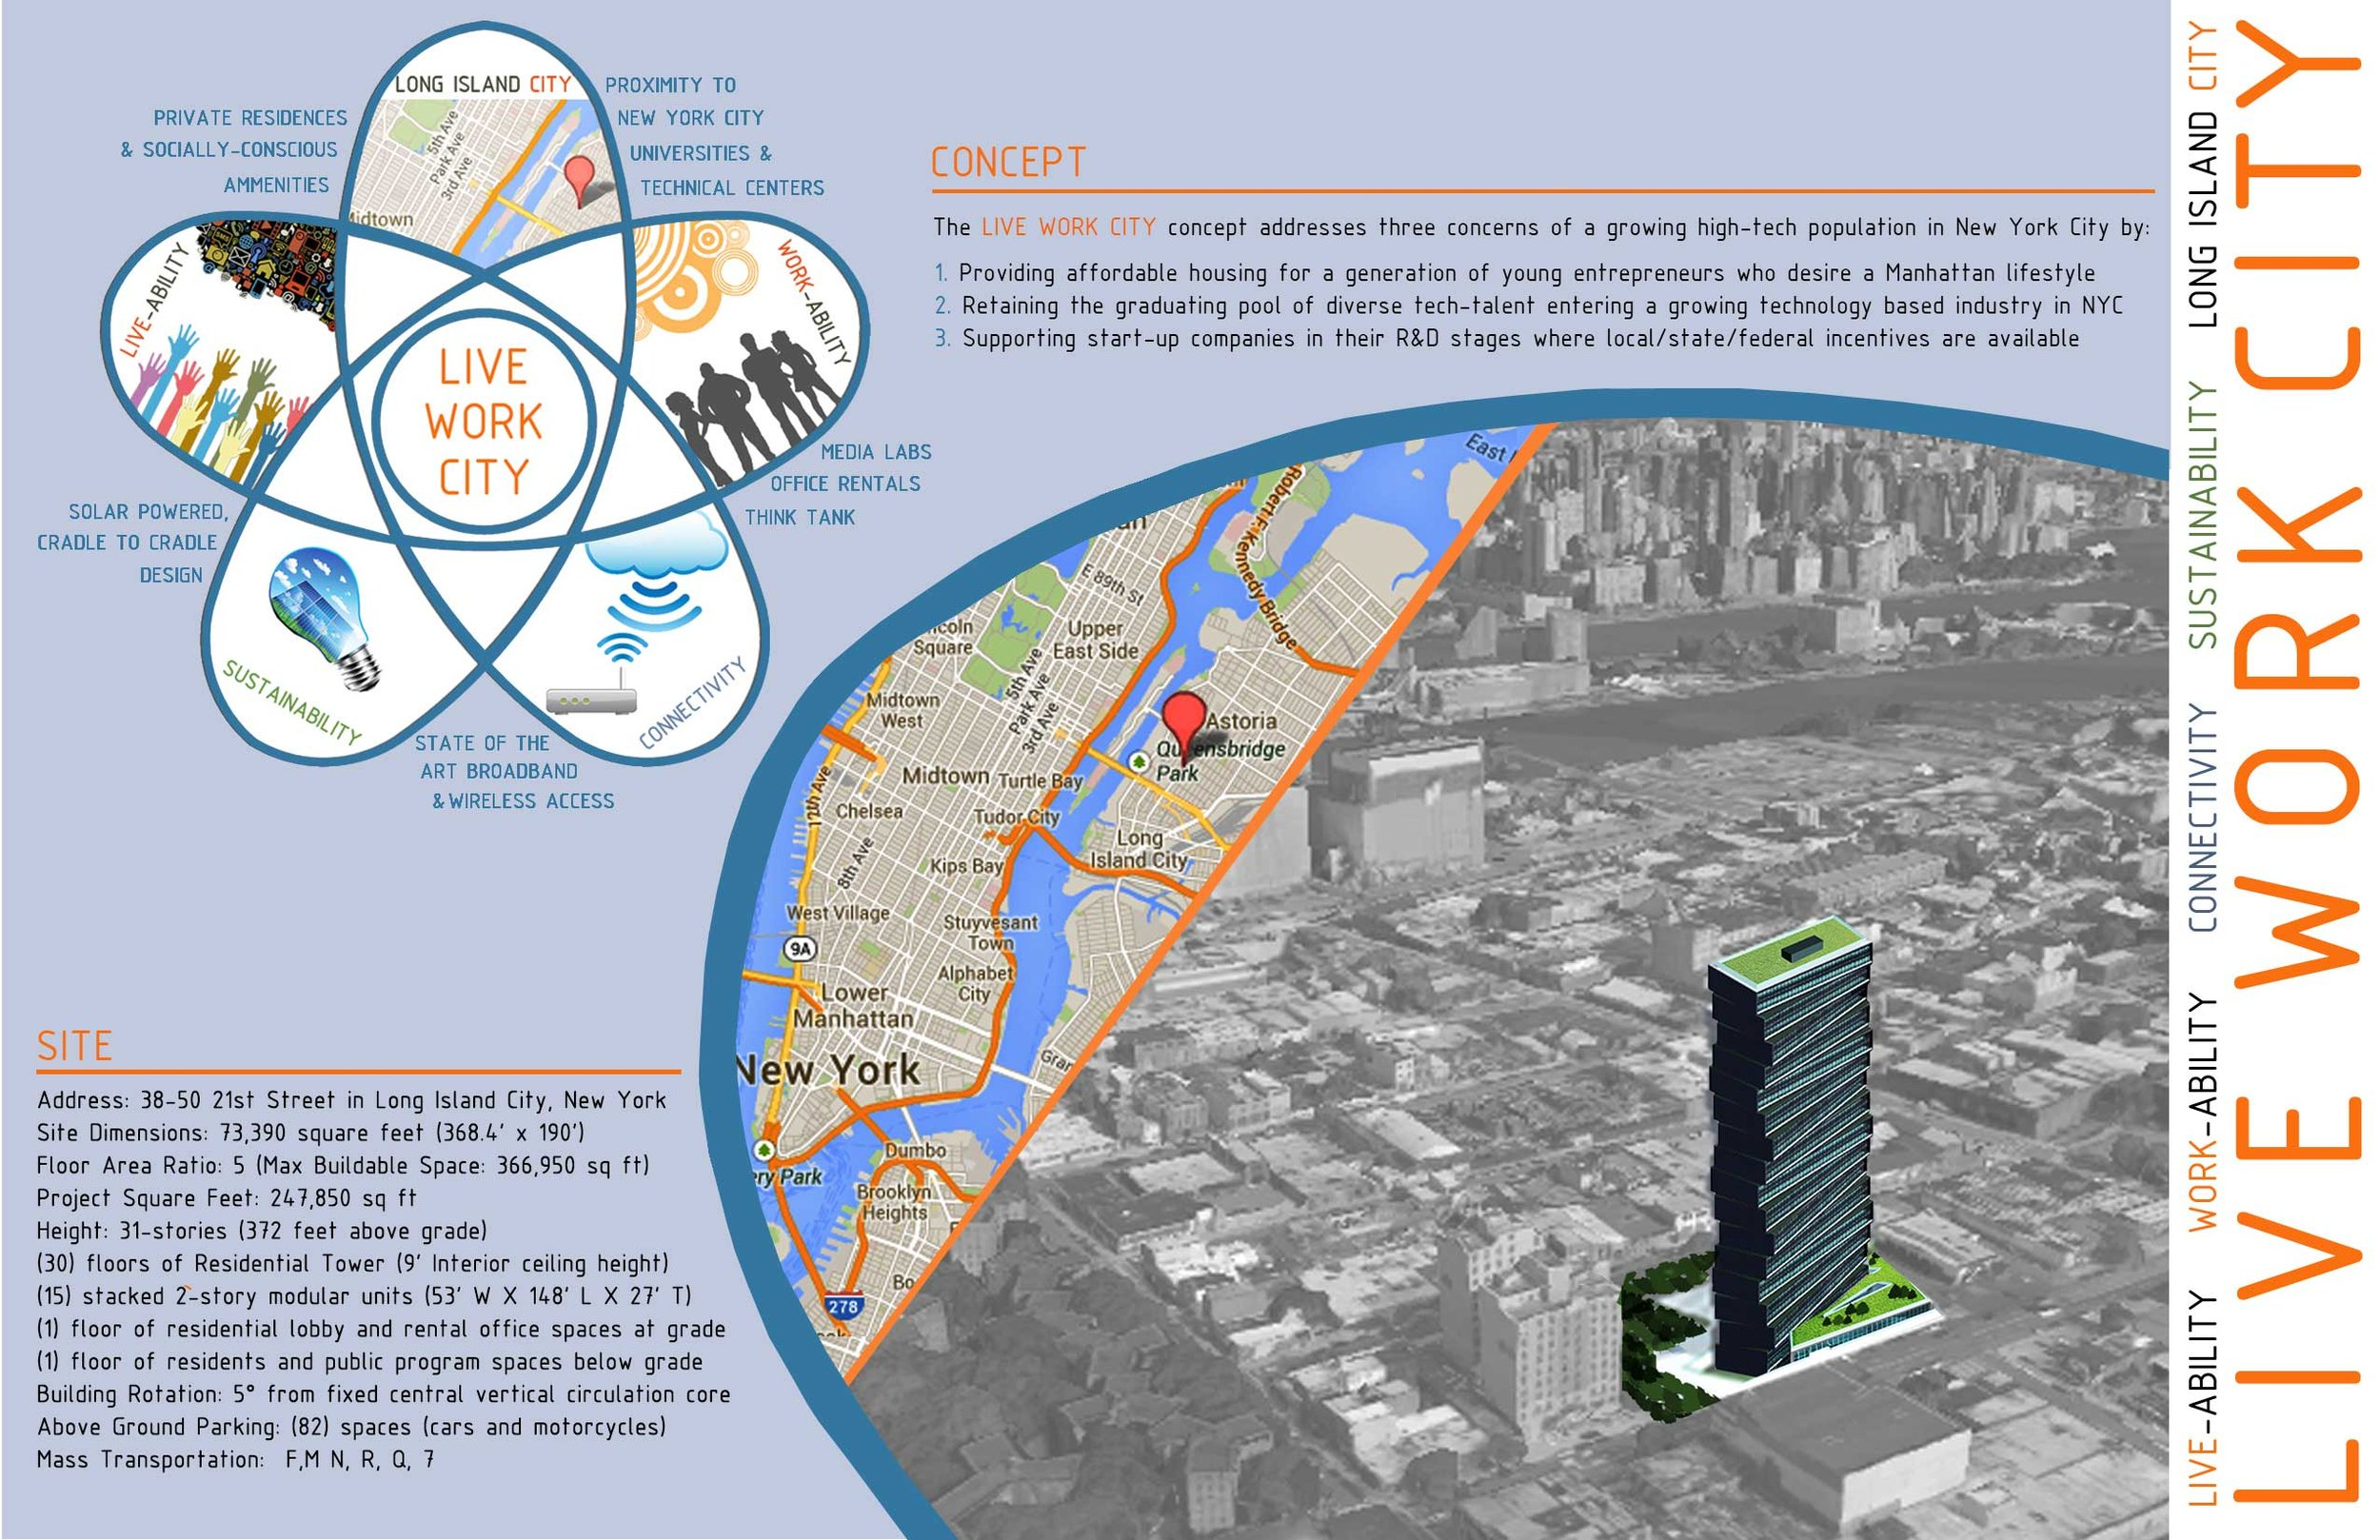 live-work-city-concept_opt1.jpg